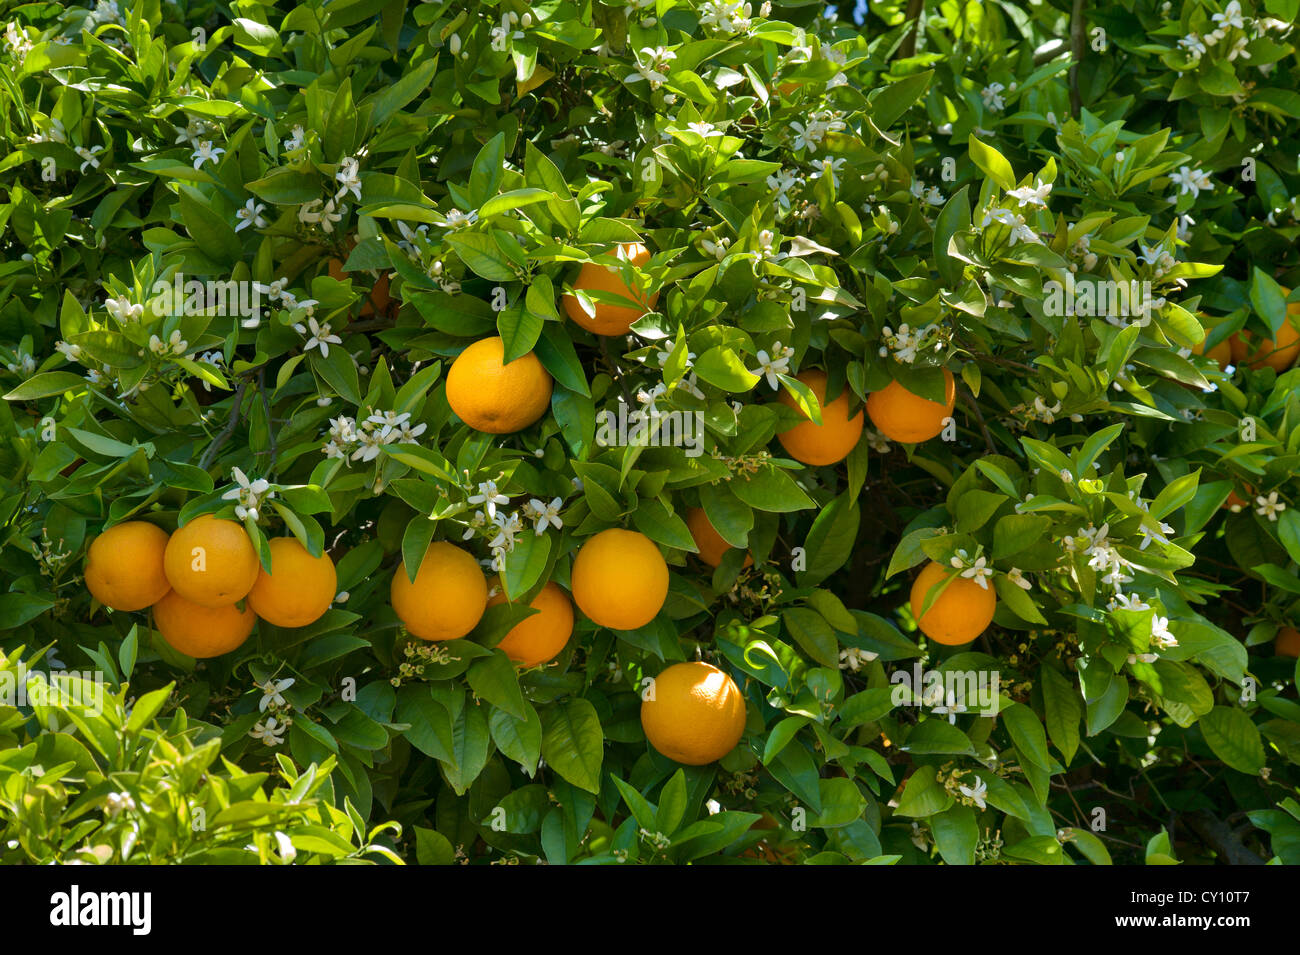 Oranges, and orange blossom on the tree in an Algarve Orange grove, Portugal Stock Photo